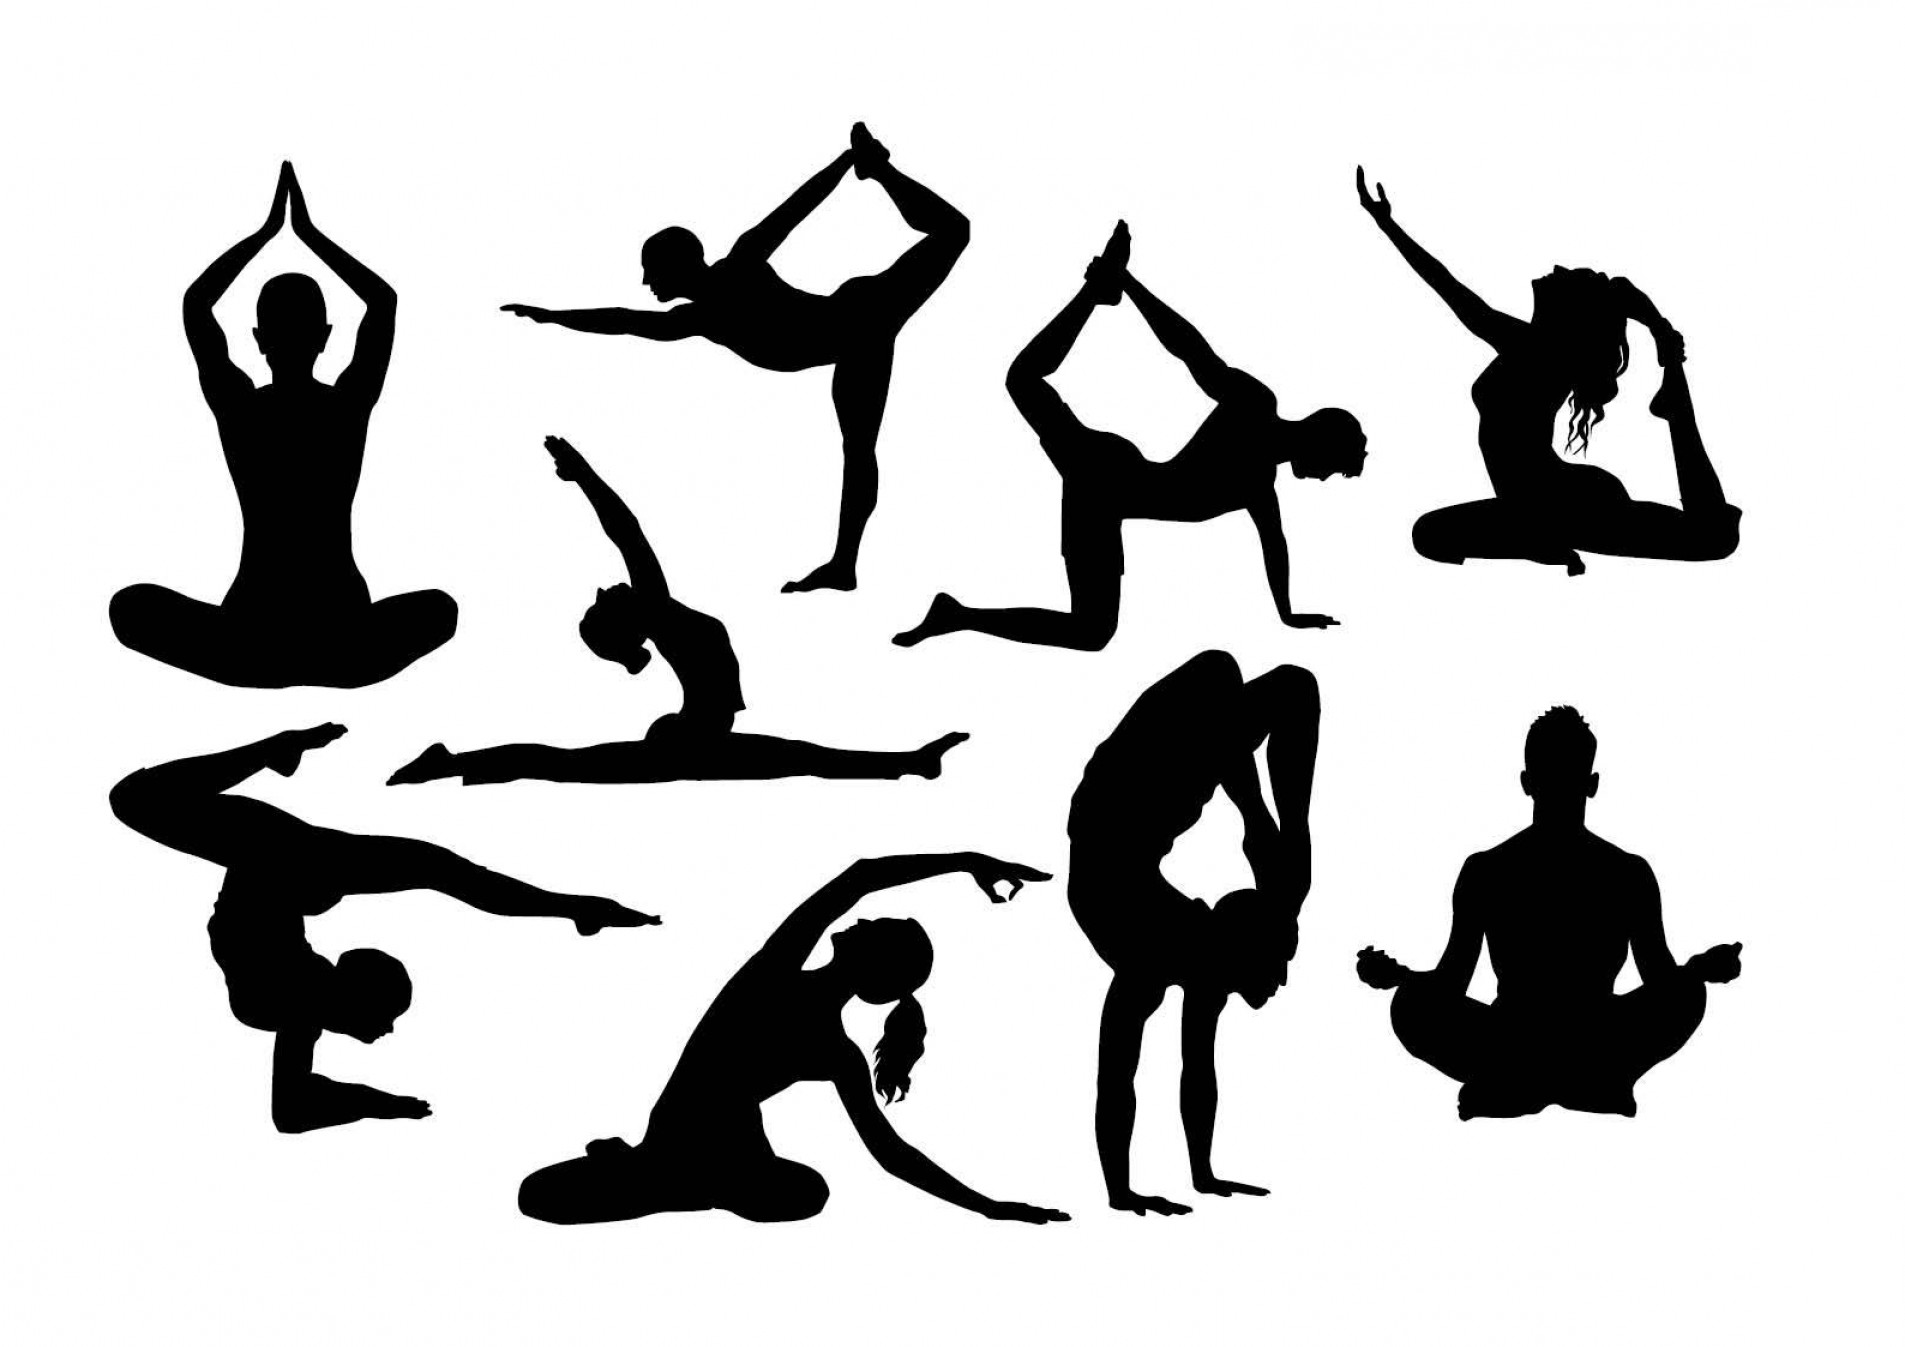 Yoga Vector Silhouette SVG: Yoga Silhouette Svg Cut File Yoga Png